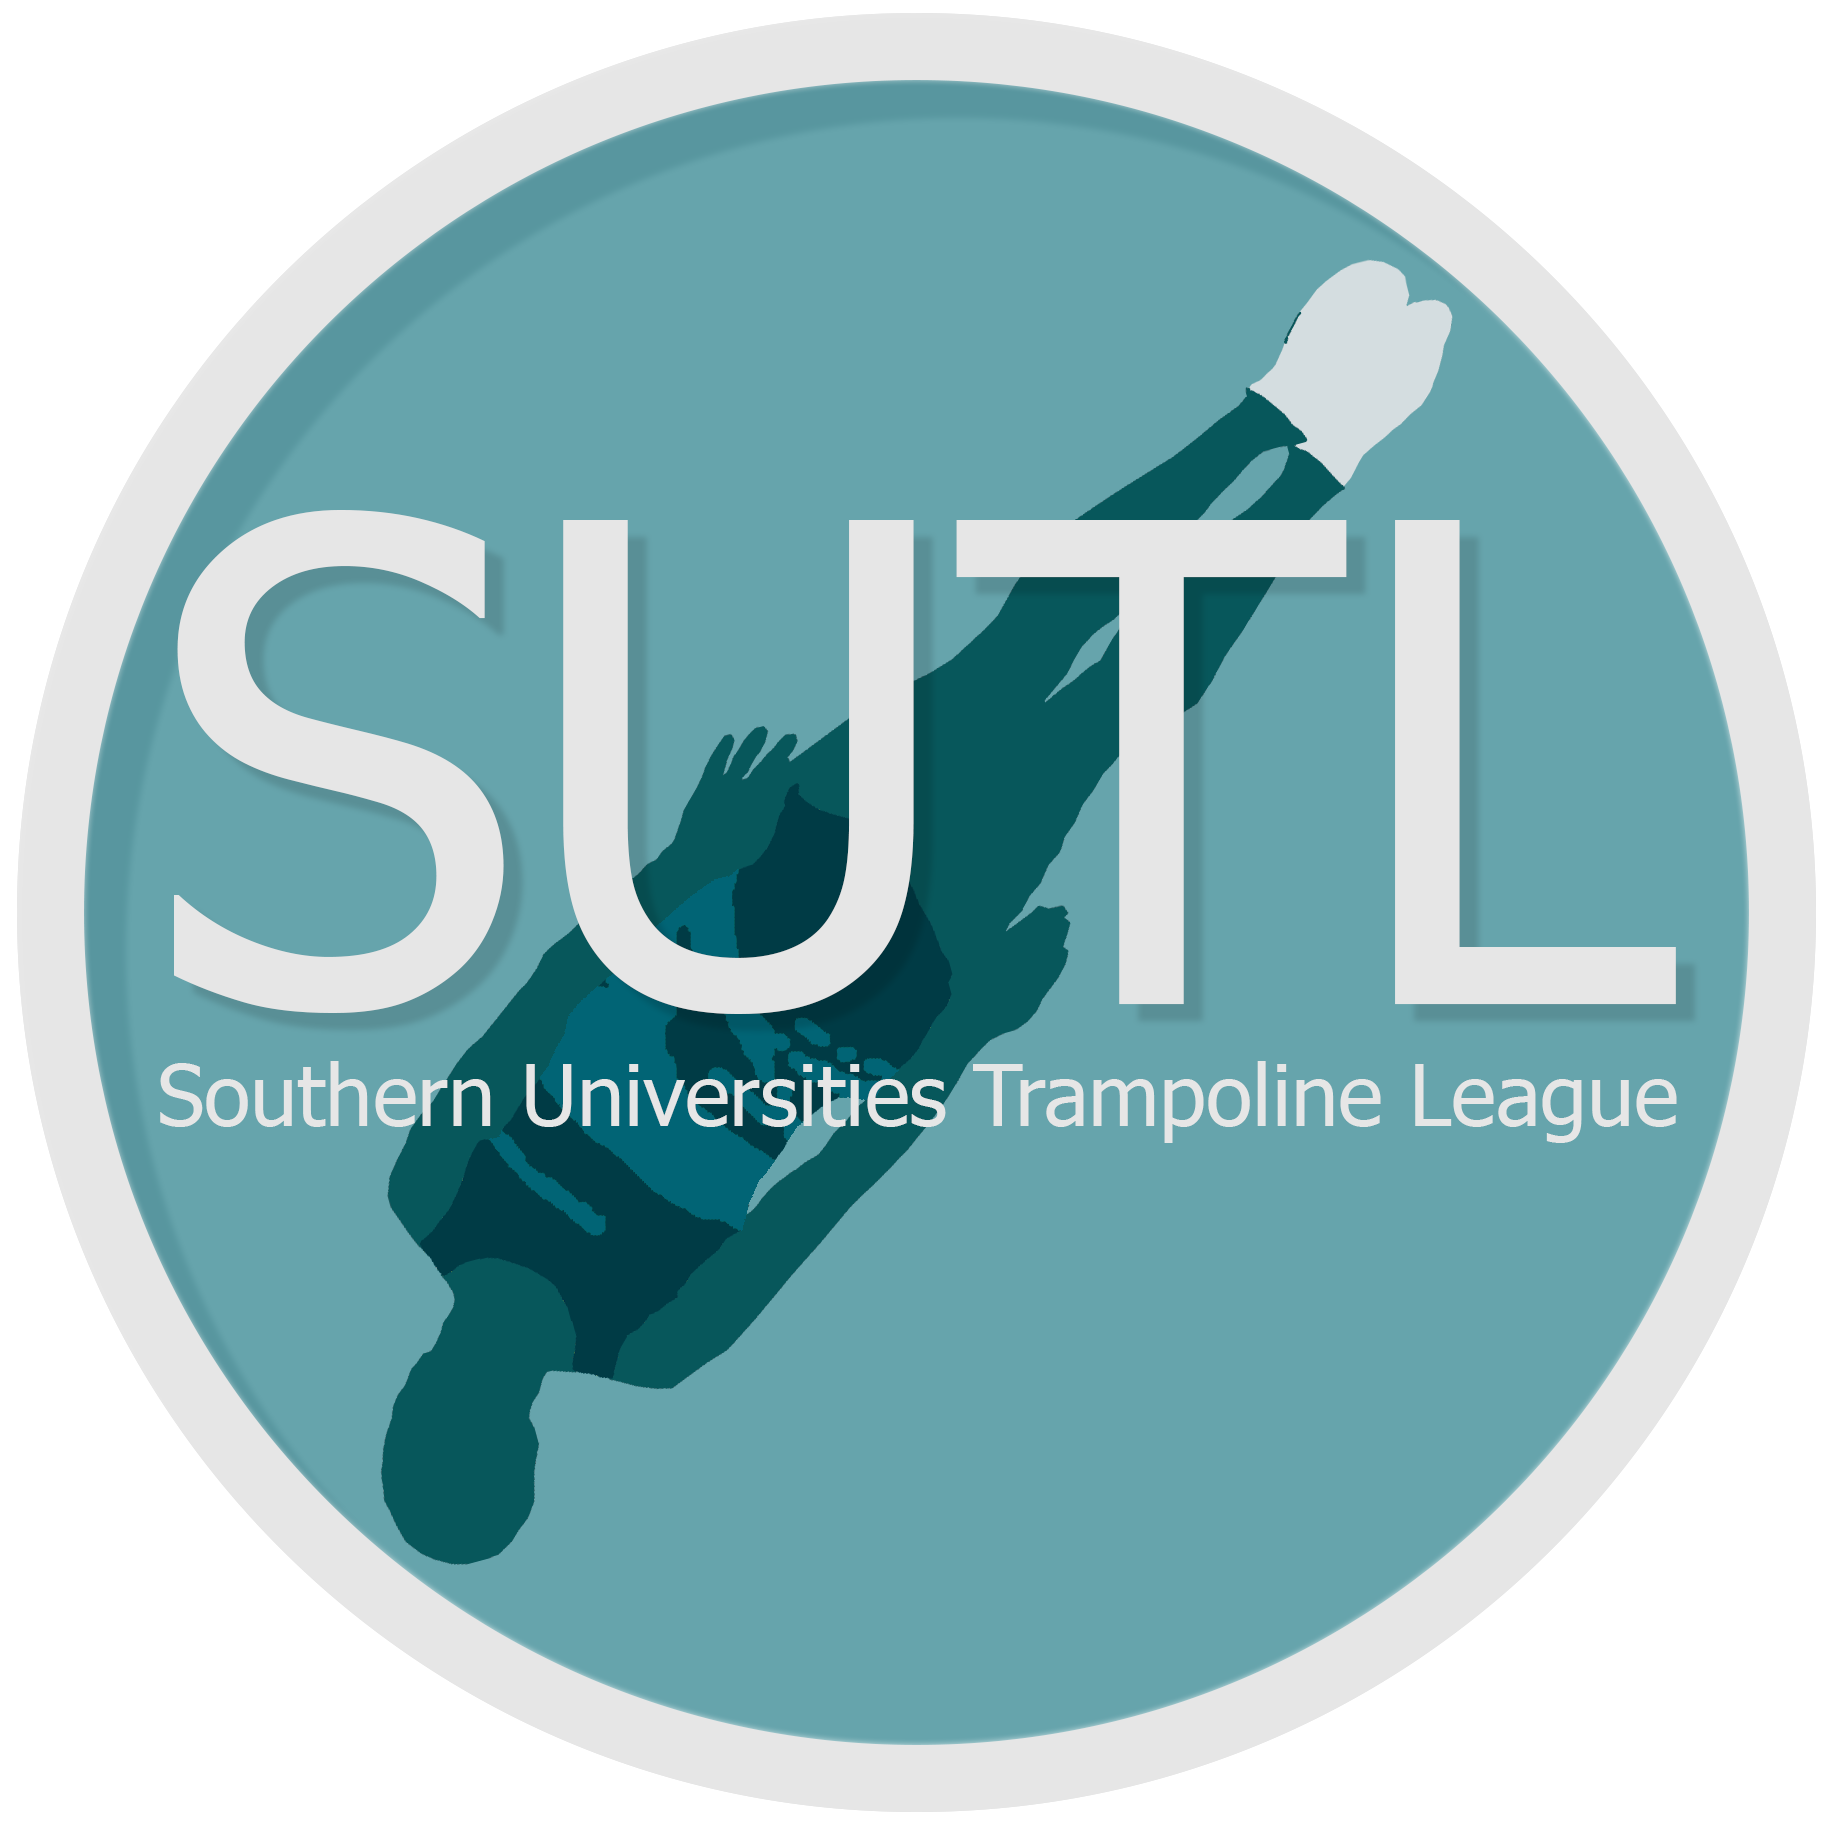 Southern Universities Trampoline League Logo